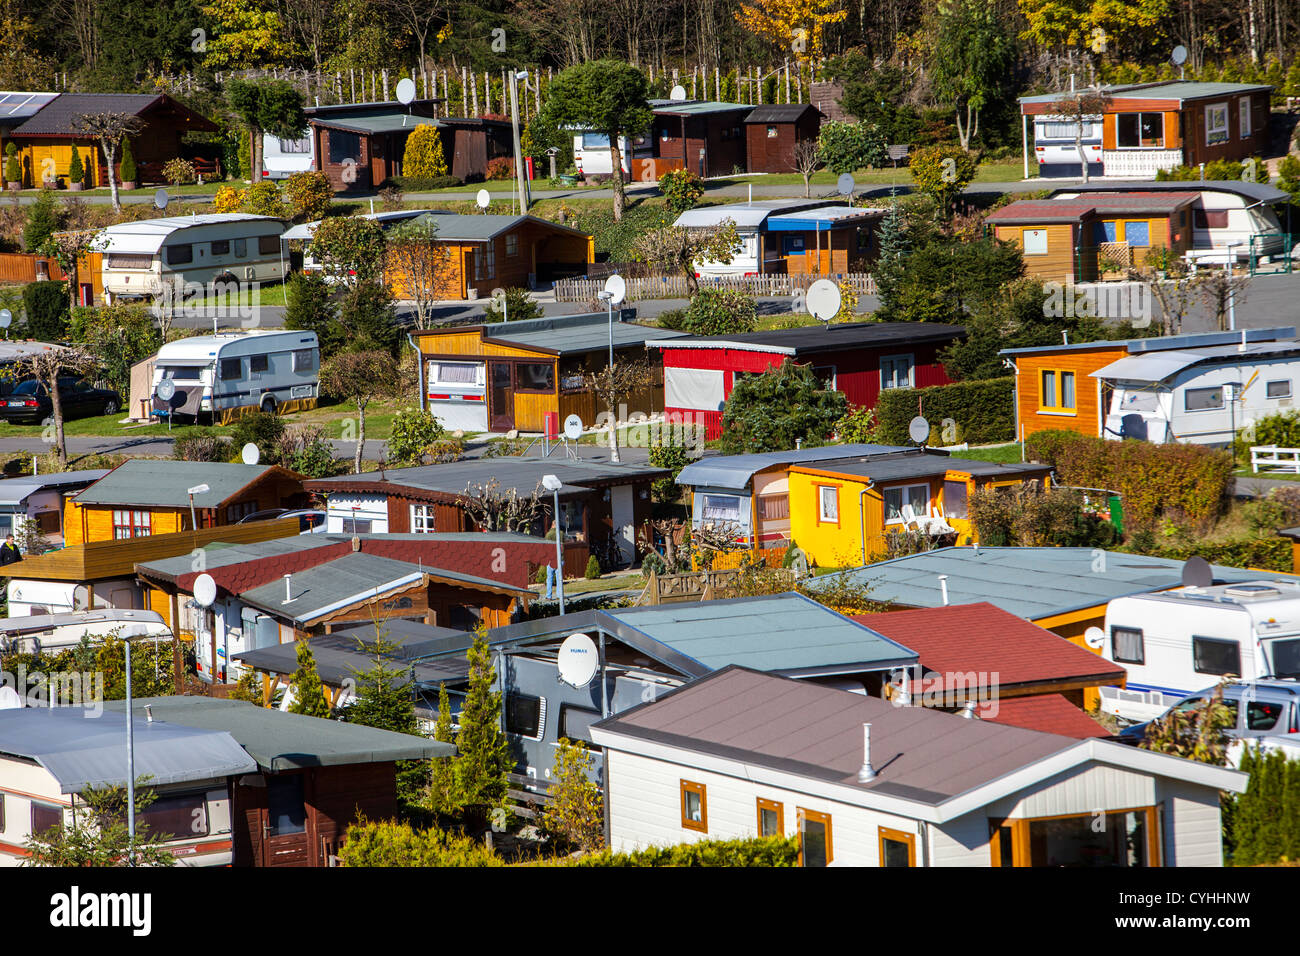 All year open trailer park in Witerberg, Sauerland, a north western region in Germany, Europe. Stock Photo